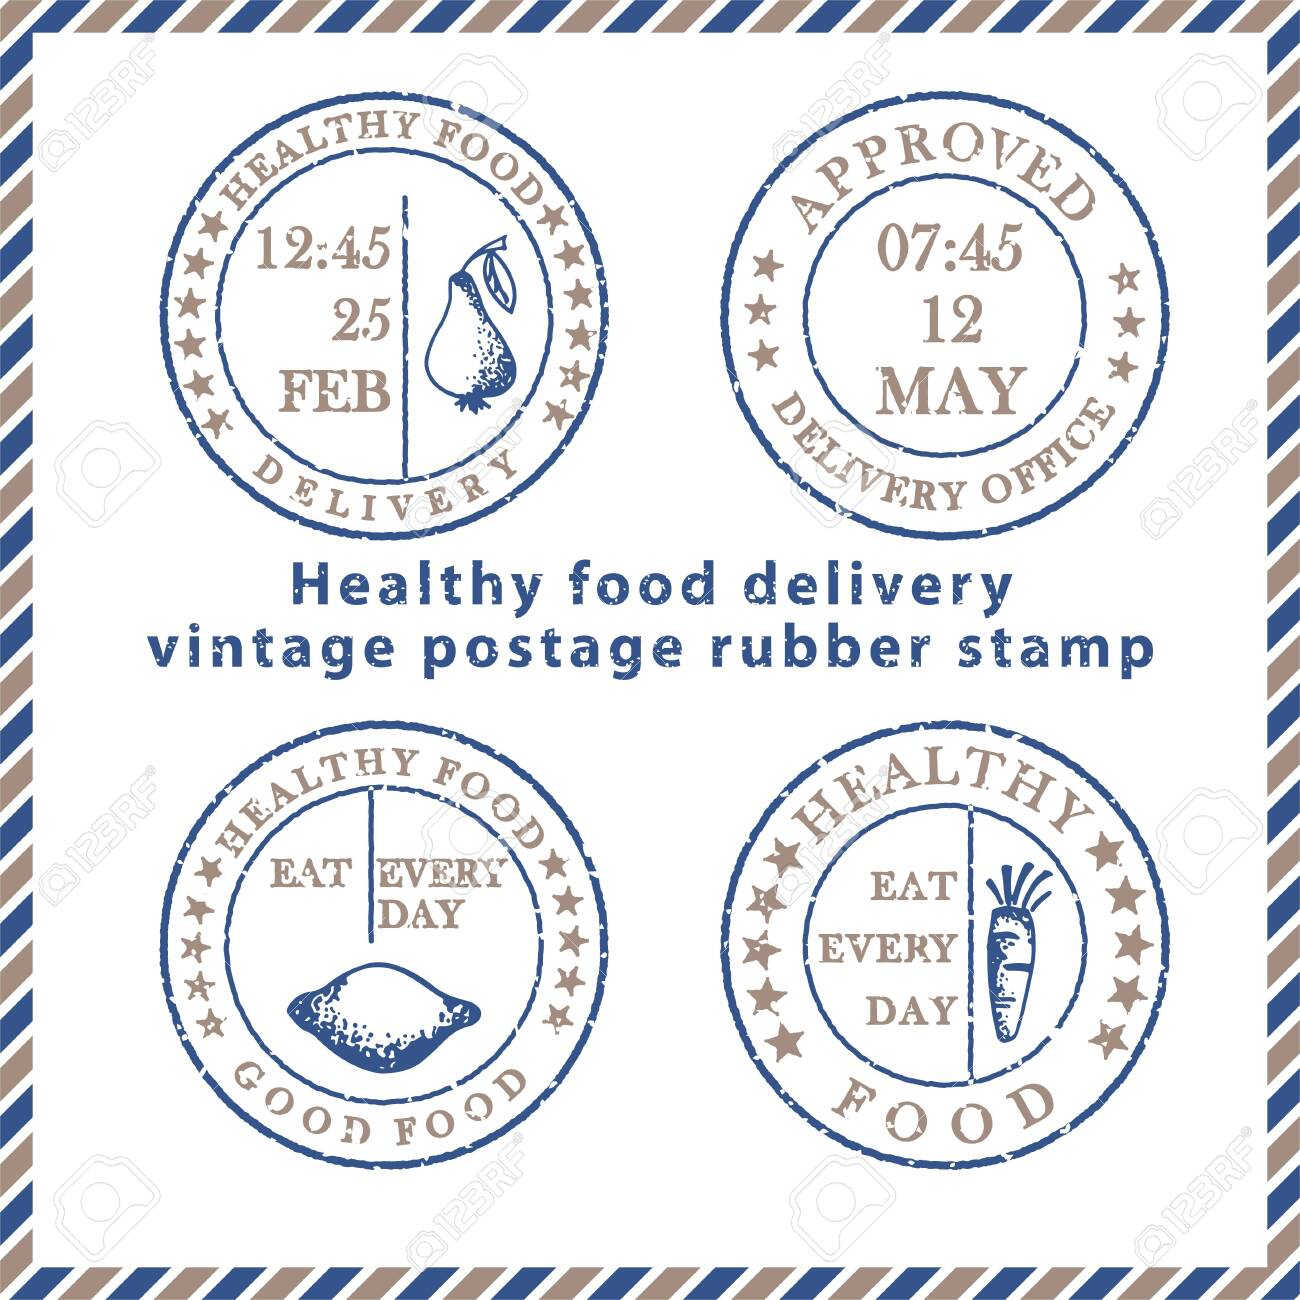 Set of vintage textured grunge food delivery rubber stamps with meal symbols in classic blue and brown colors. For design of post card, advertising poster, web banner, sale flyers Vector illustration - 142358269